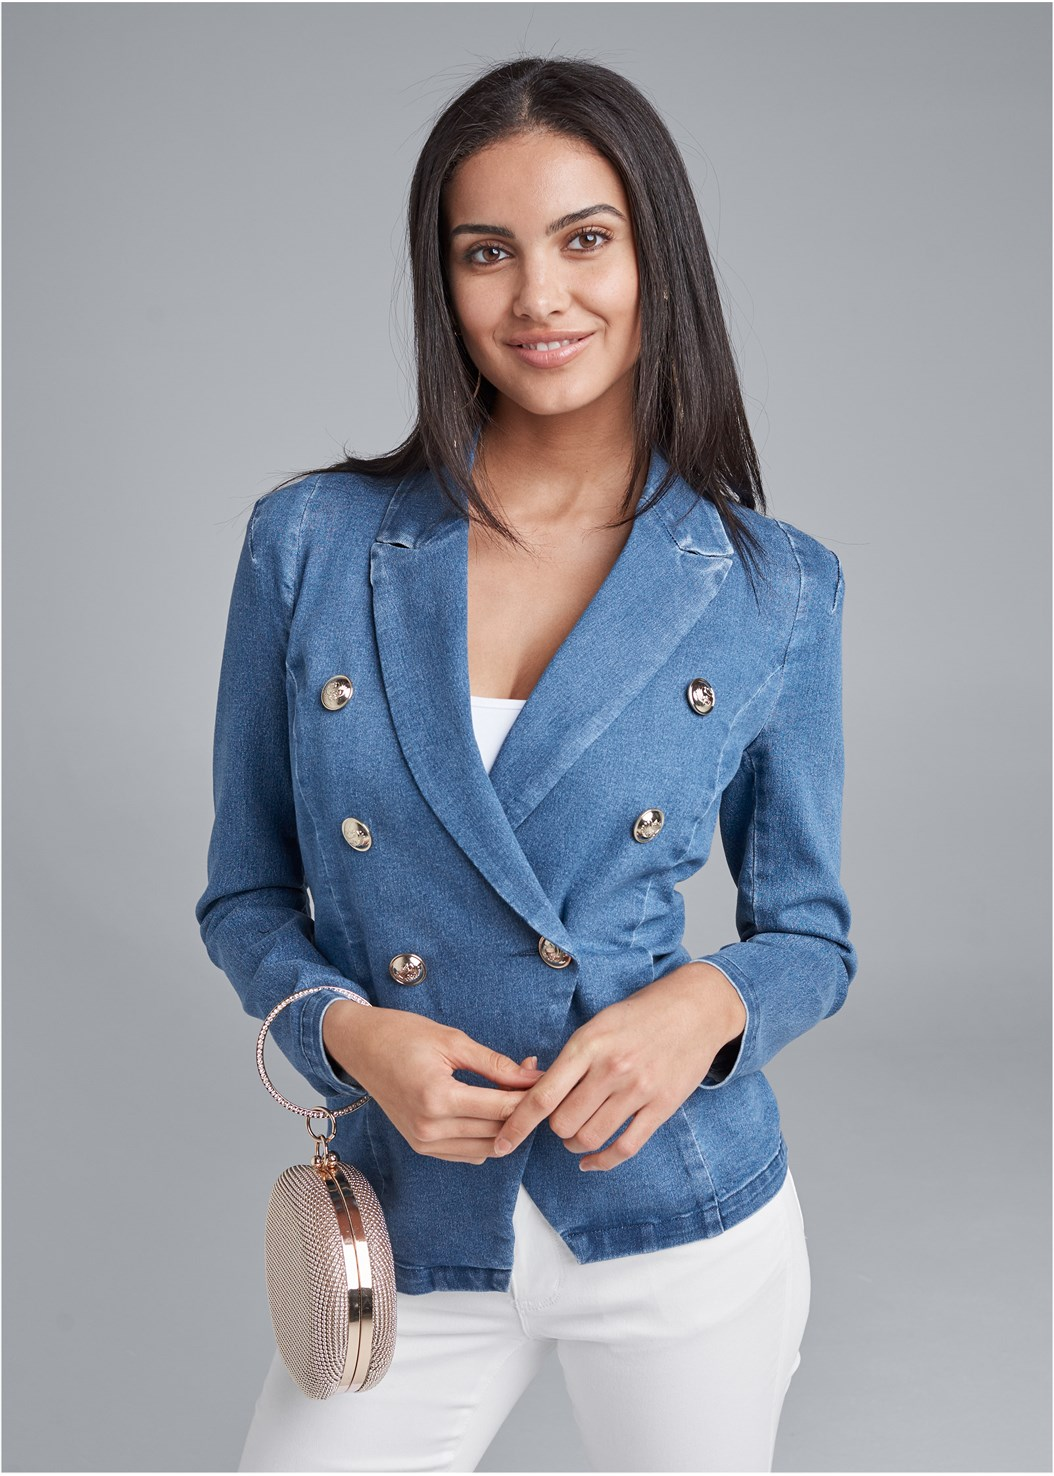 Denim Blazer,Basic Cami Two Pack,Jean Bermuda Shorts,Bum Lifter Jeans,Multi Strap Ankle Wrap Heel,High Heel Strappy Sandals,Two-Tone Crossbody Bag,Ring Handle Circle Clutch